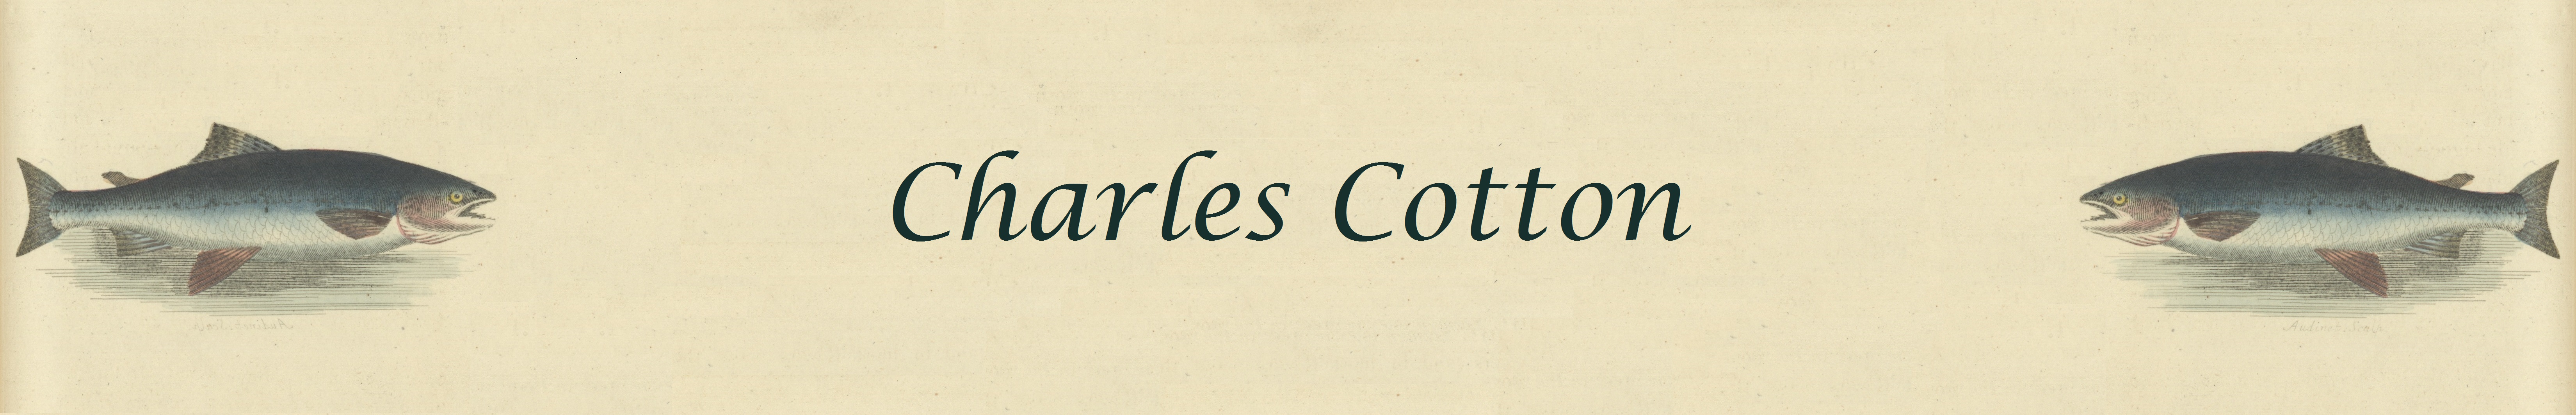 Charles Cotton Page Banner